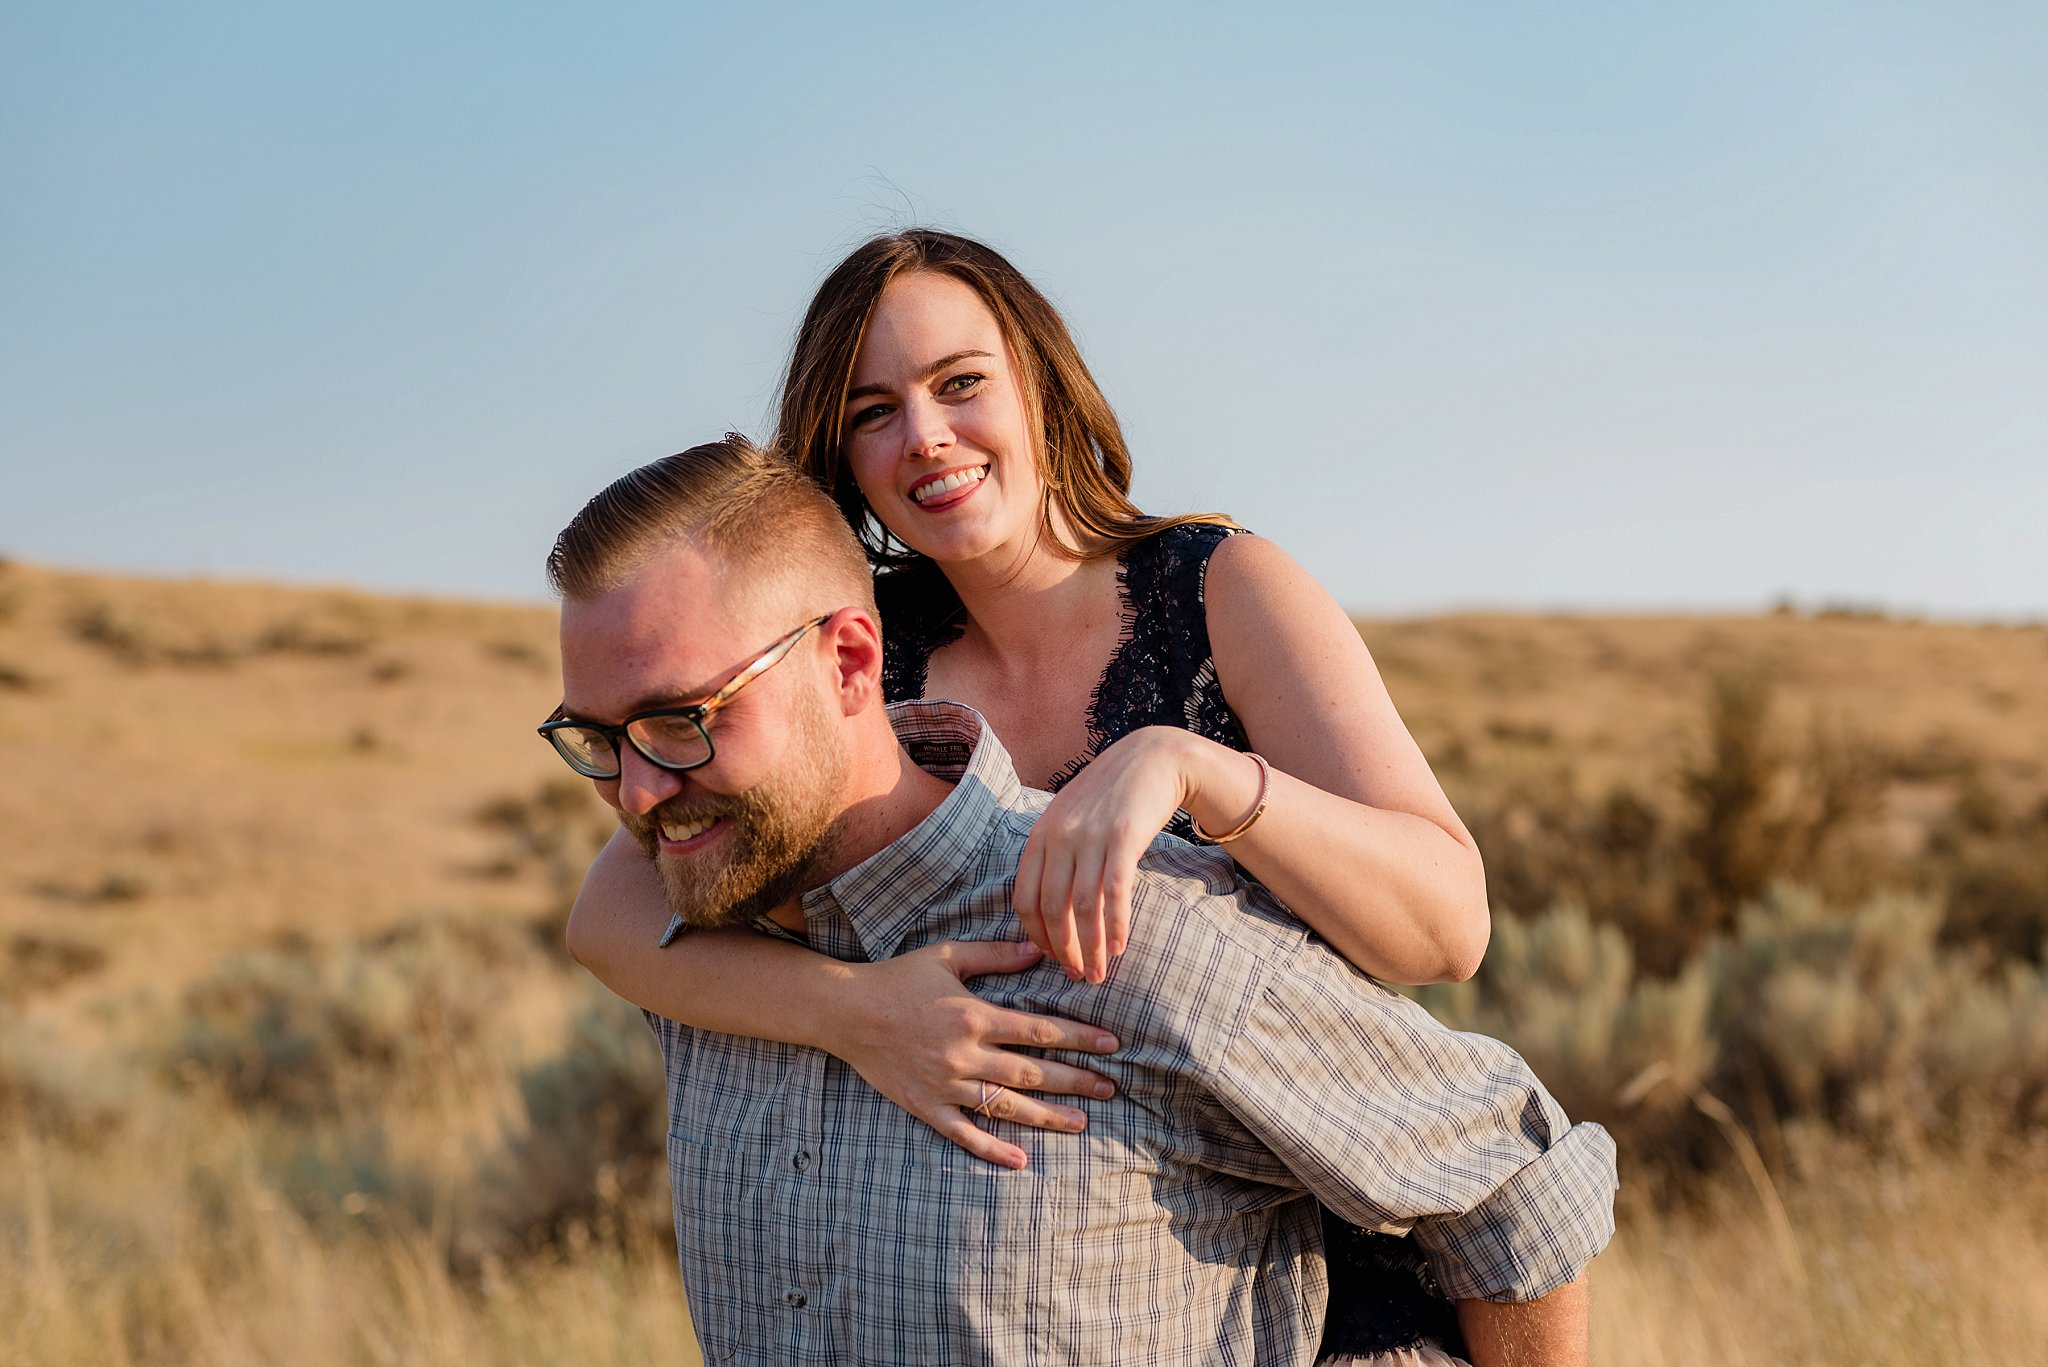 Zilla Photography - Boise Foothills Date Night Couple Session-2_SM.jpg